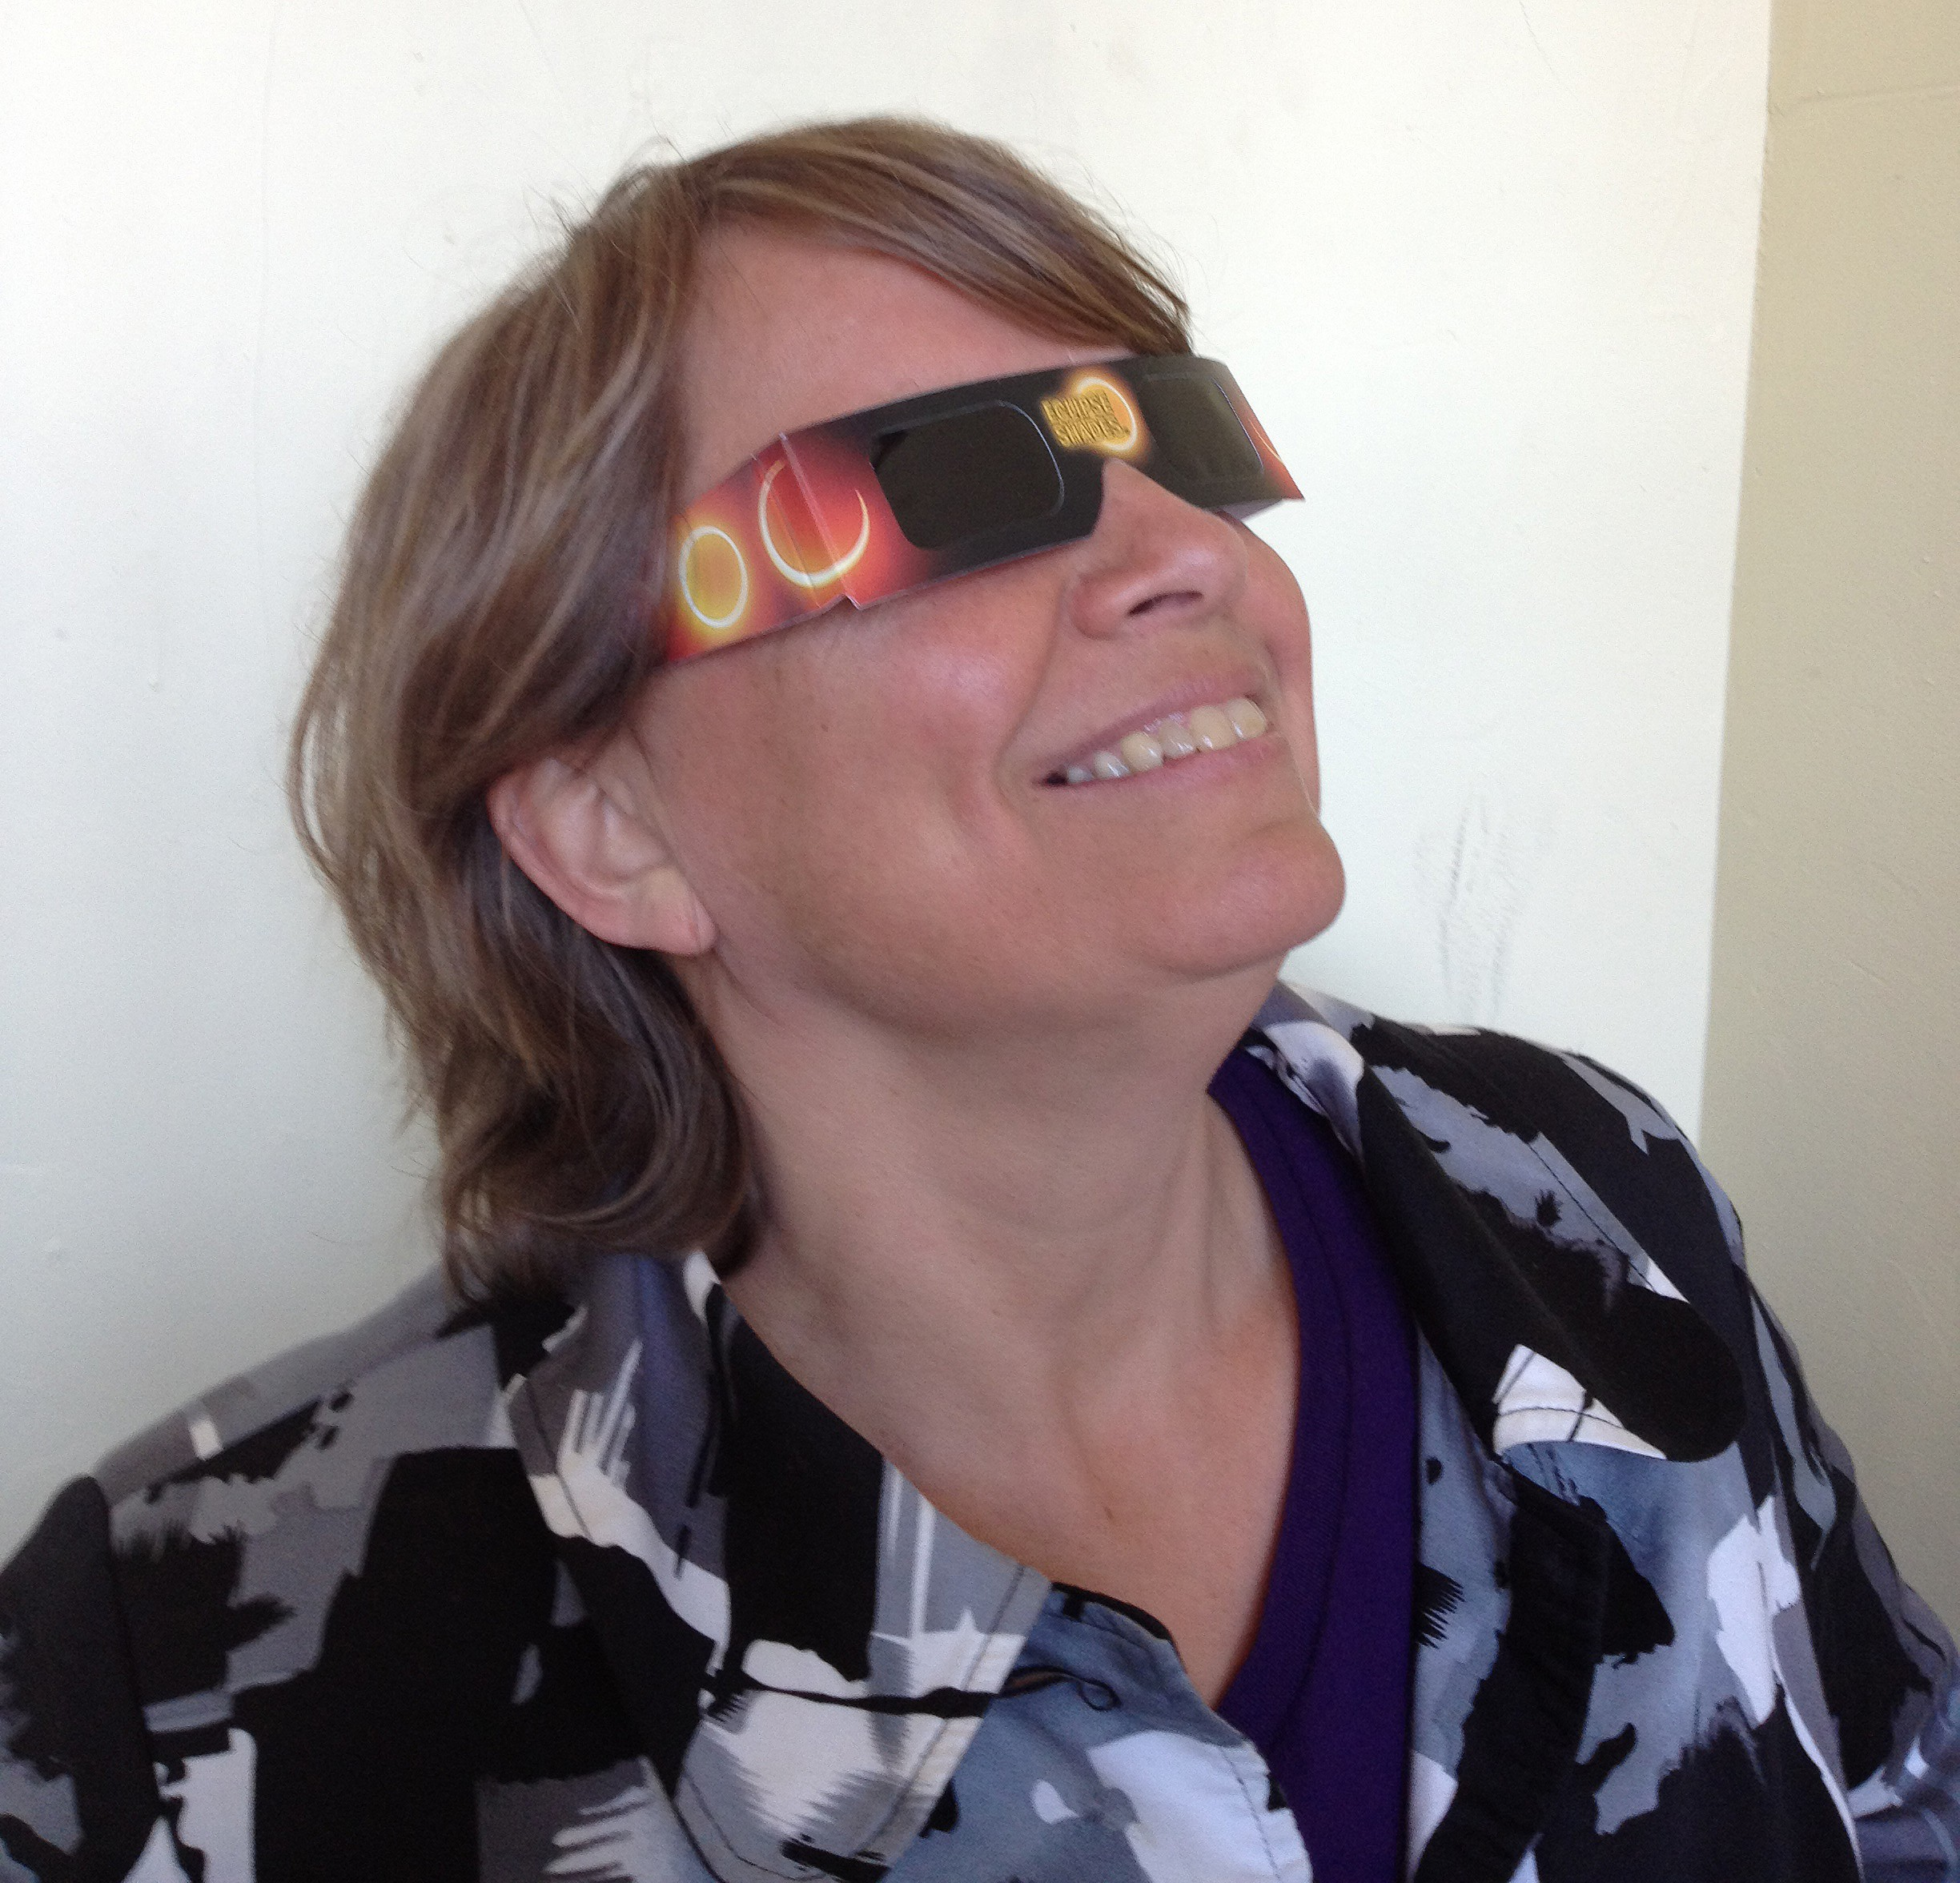 The Arcata Playhouse's Jackie Dandeneau wearing special eclipse viewing glasses - PHOTO BY BOB DORAN